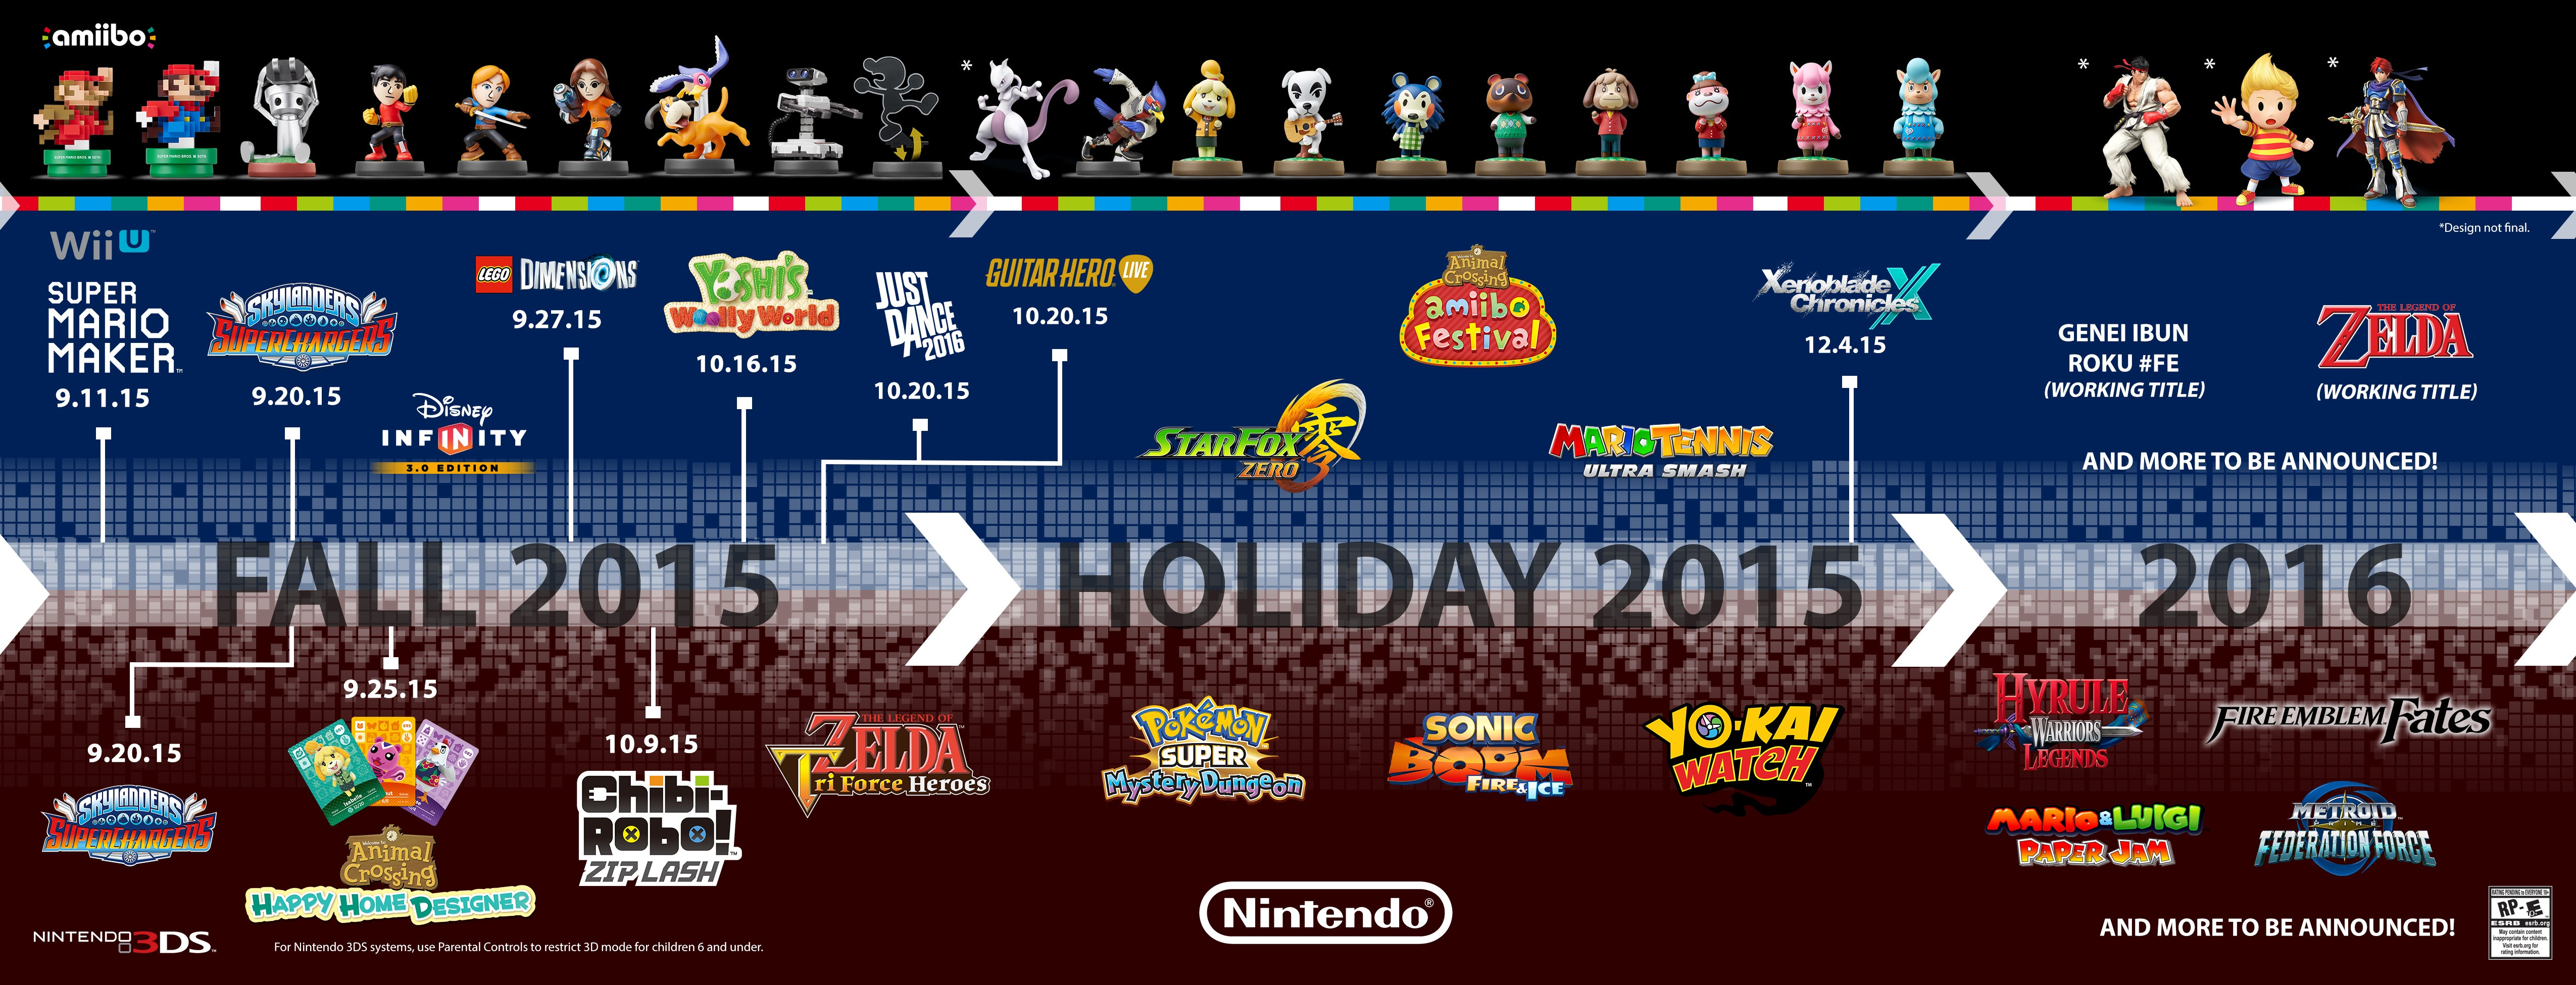 Keep Track Of Nintendo's Upcoming Releases With This Handy Image